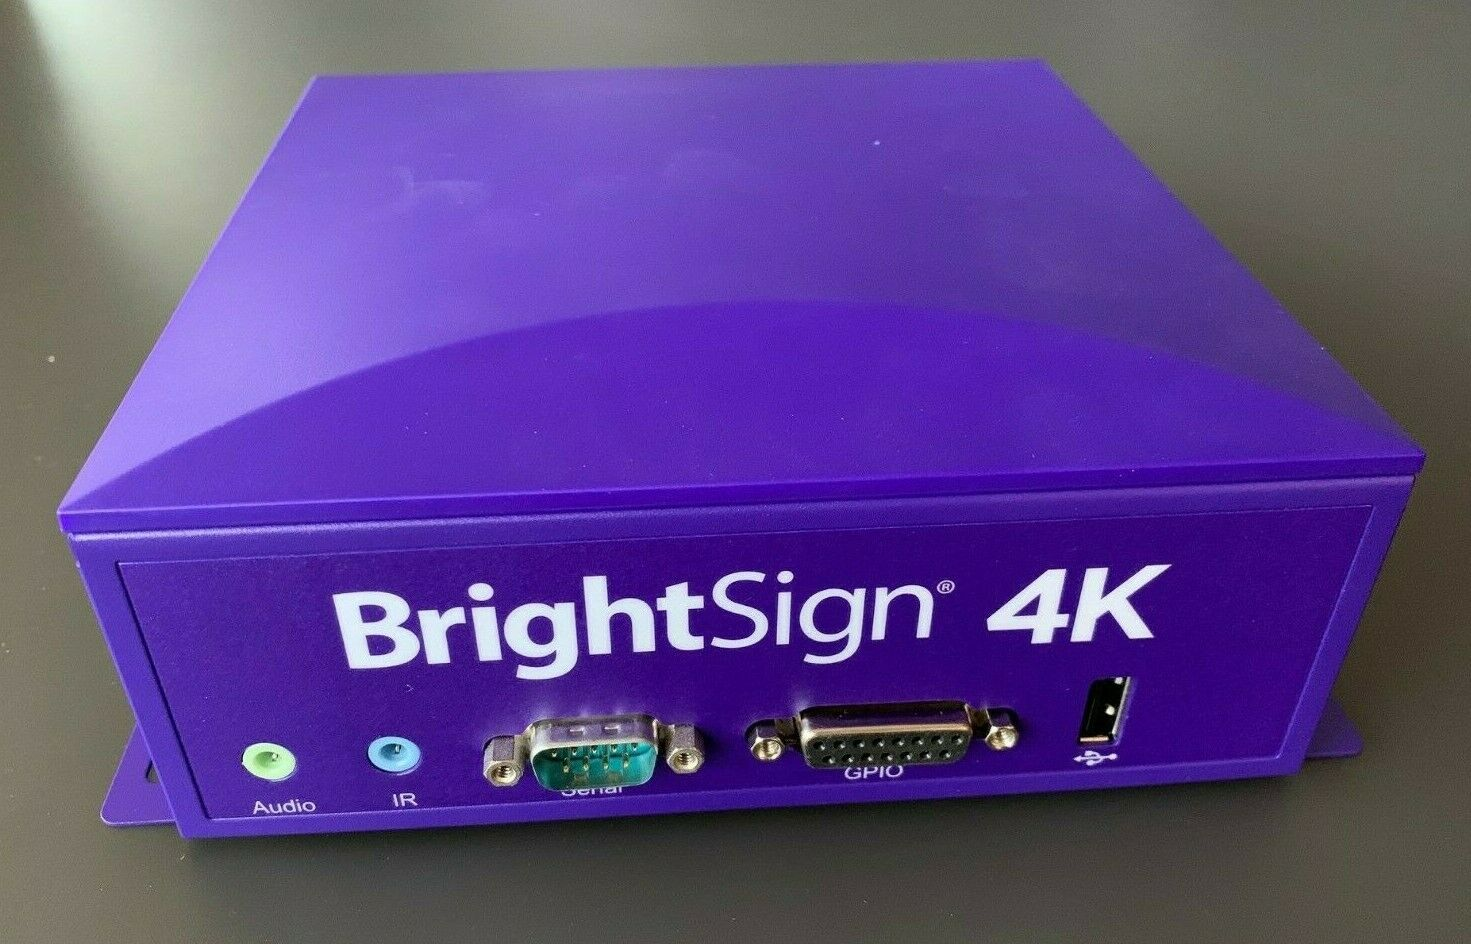 BrightSign 4K1142-WW Player - Networked Multi-Control Interactive + Live TV